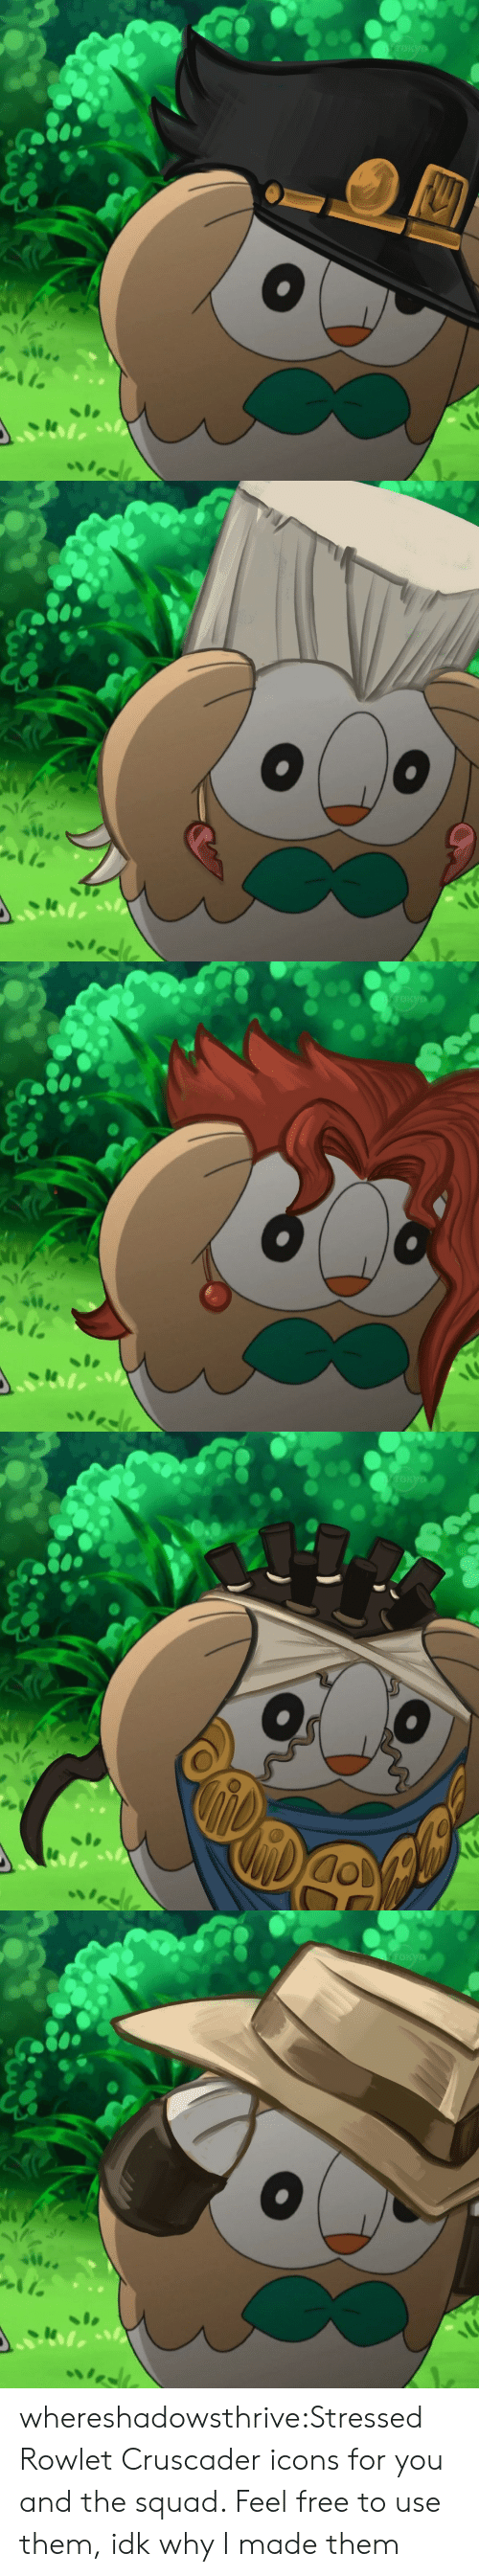 Squad, Tumblr, and Blog: frokyD whereshadowsthrive:Stressed Rowlet Cruscader icons for you and the squad. Feel free to use them, idk why I made them